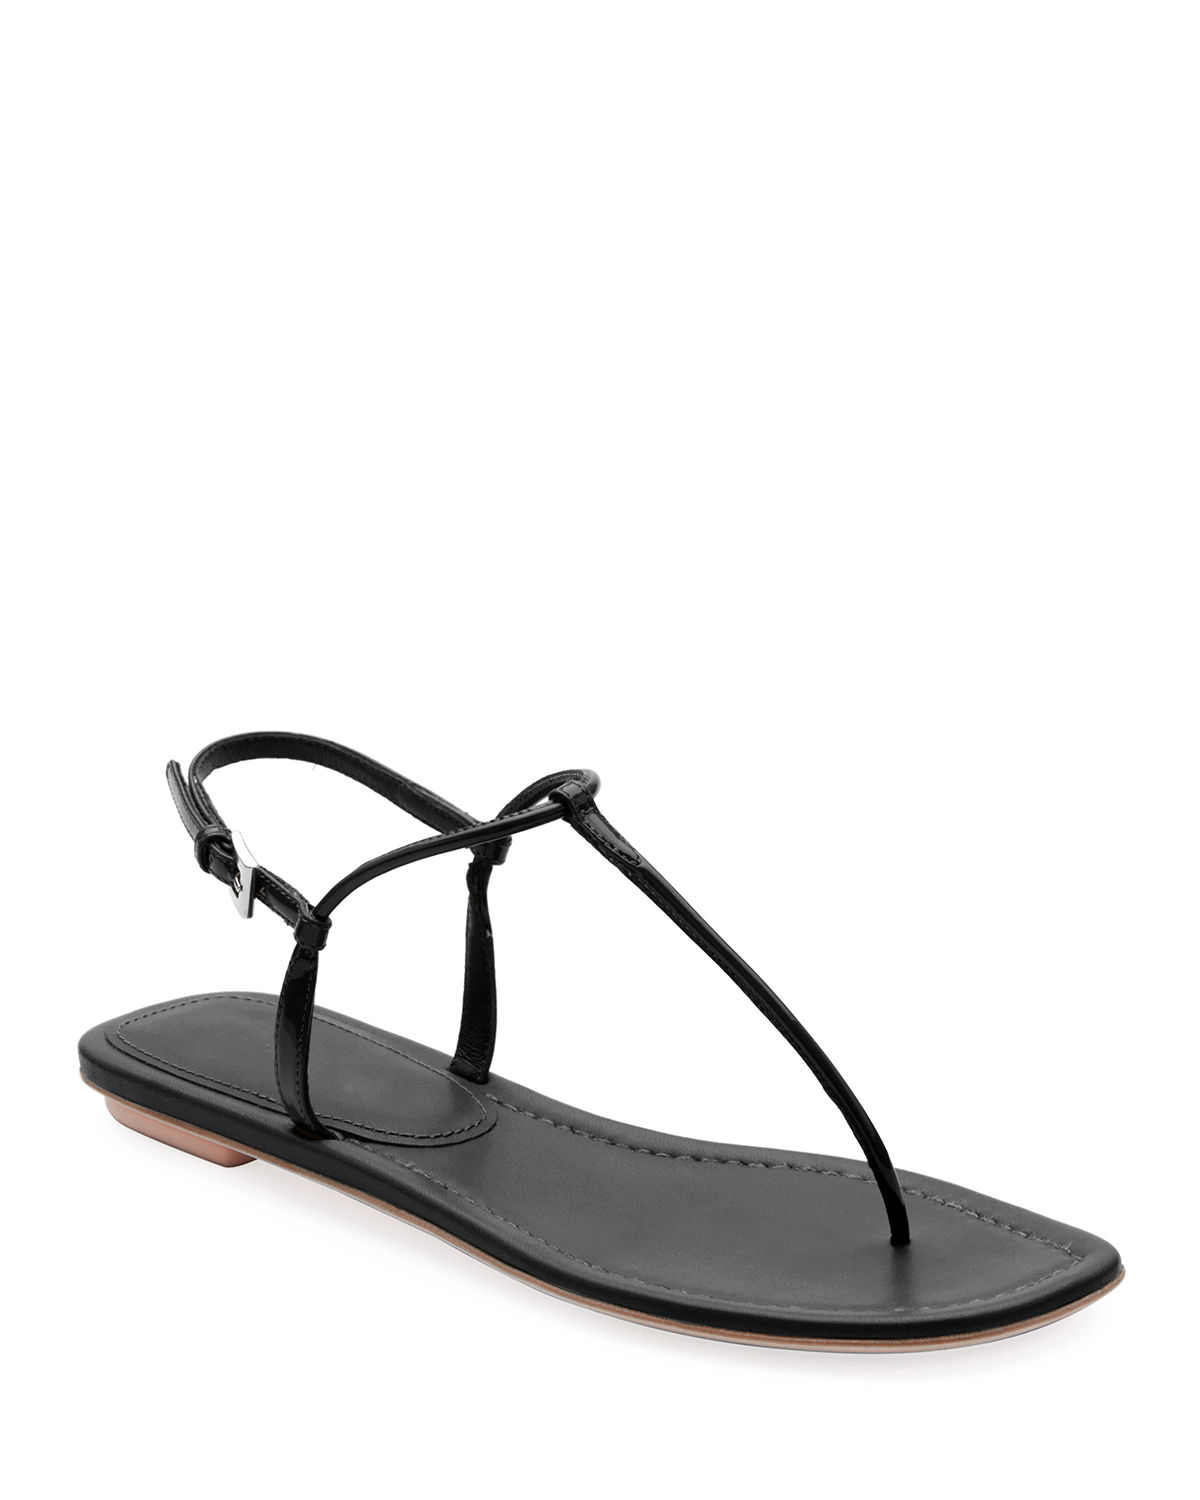 14566af15 Prada Flat Patent Leather Thong Sandals